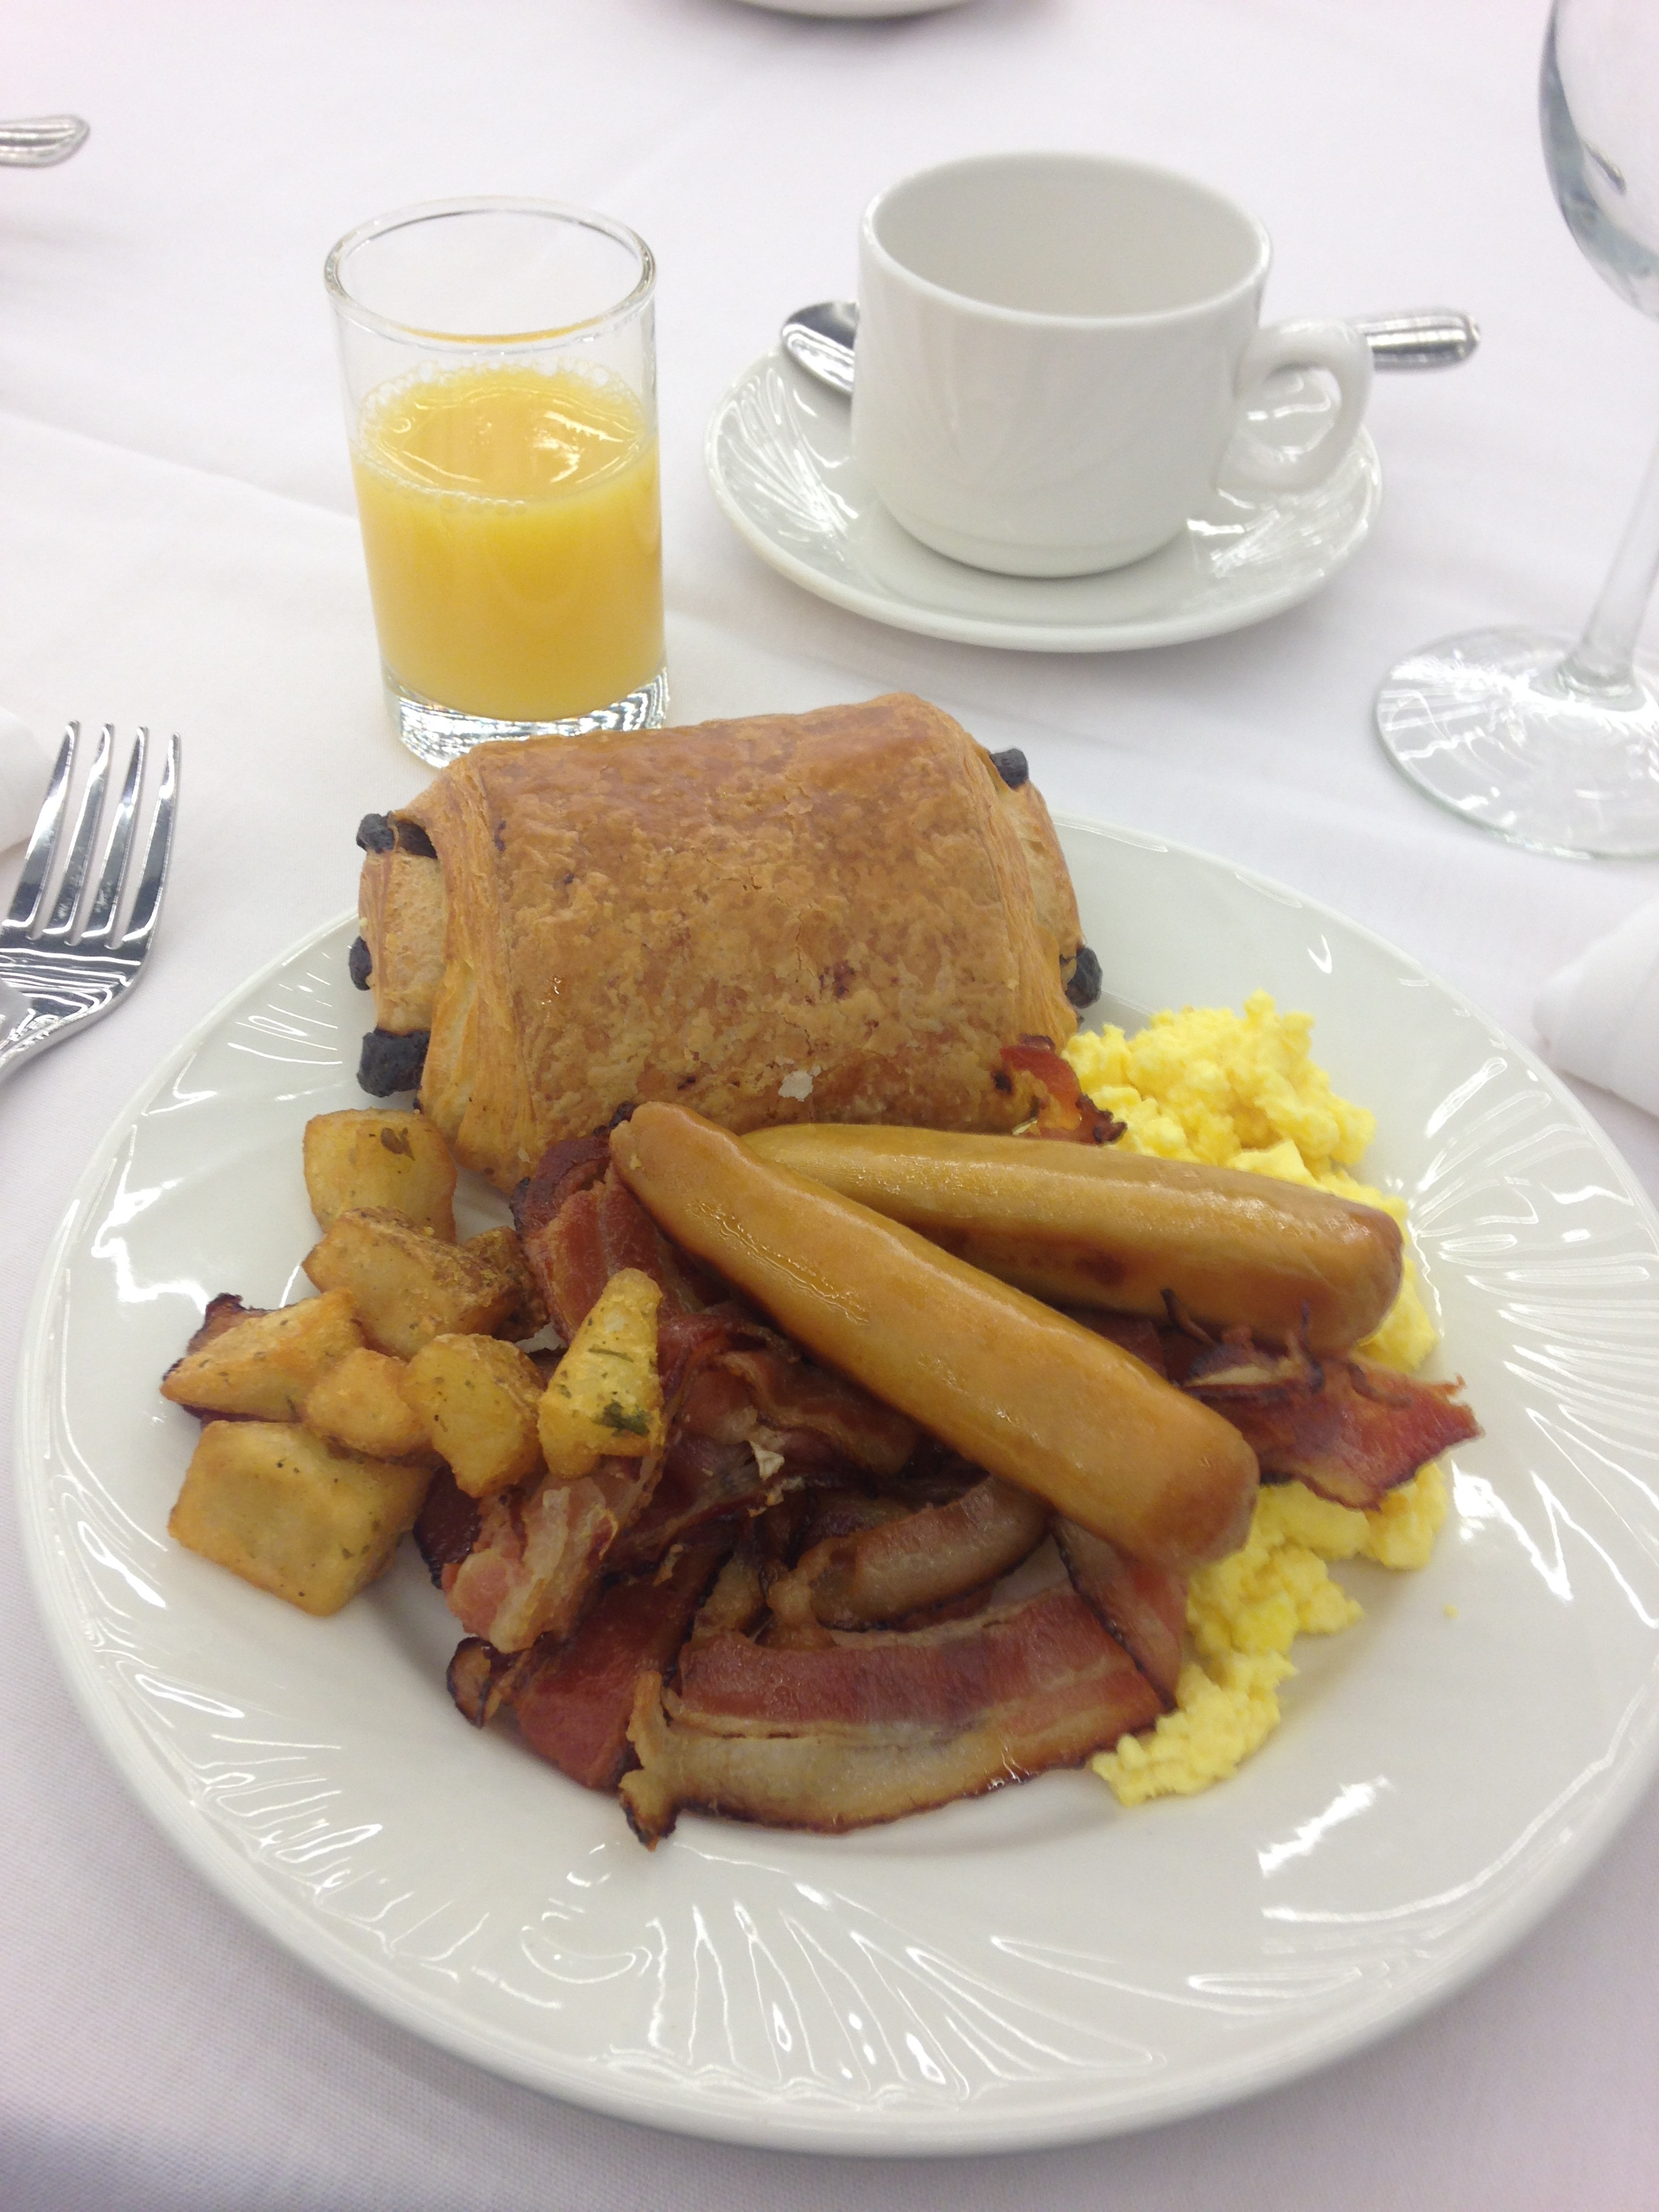 One of the best parts is the awesome free breakfast!